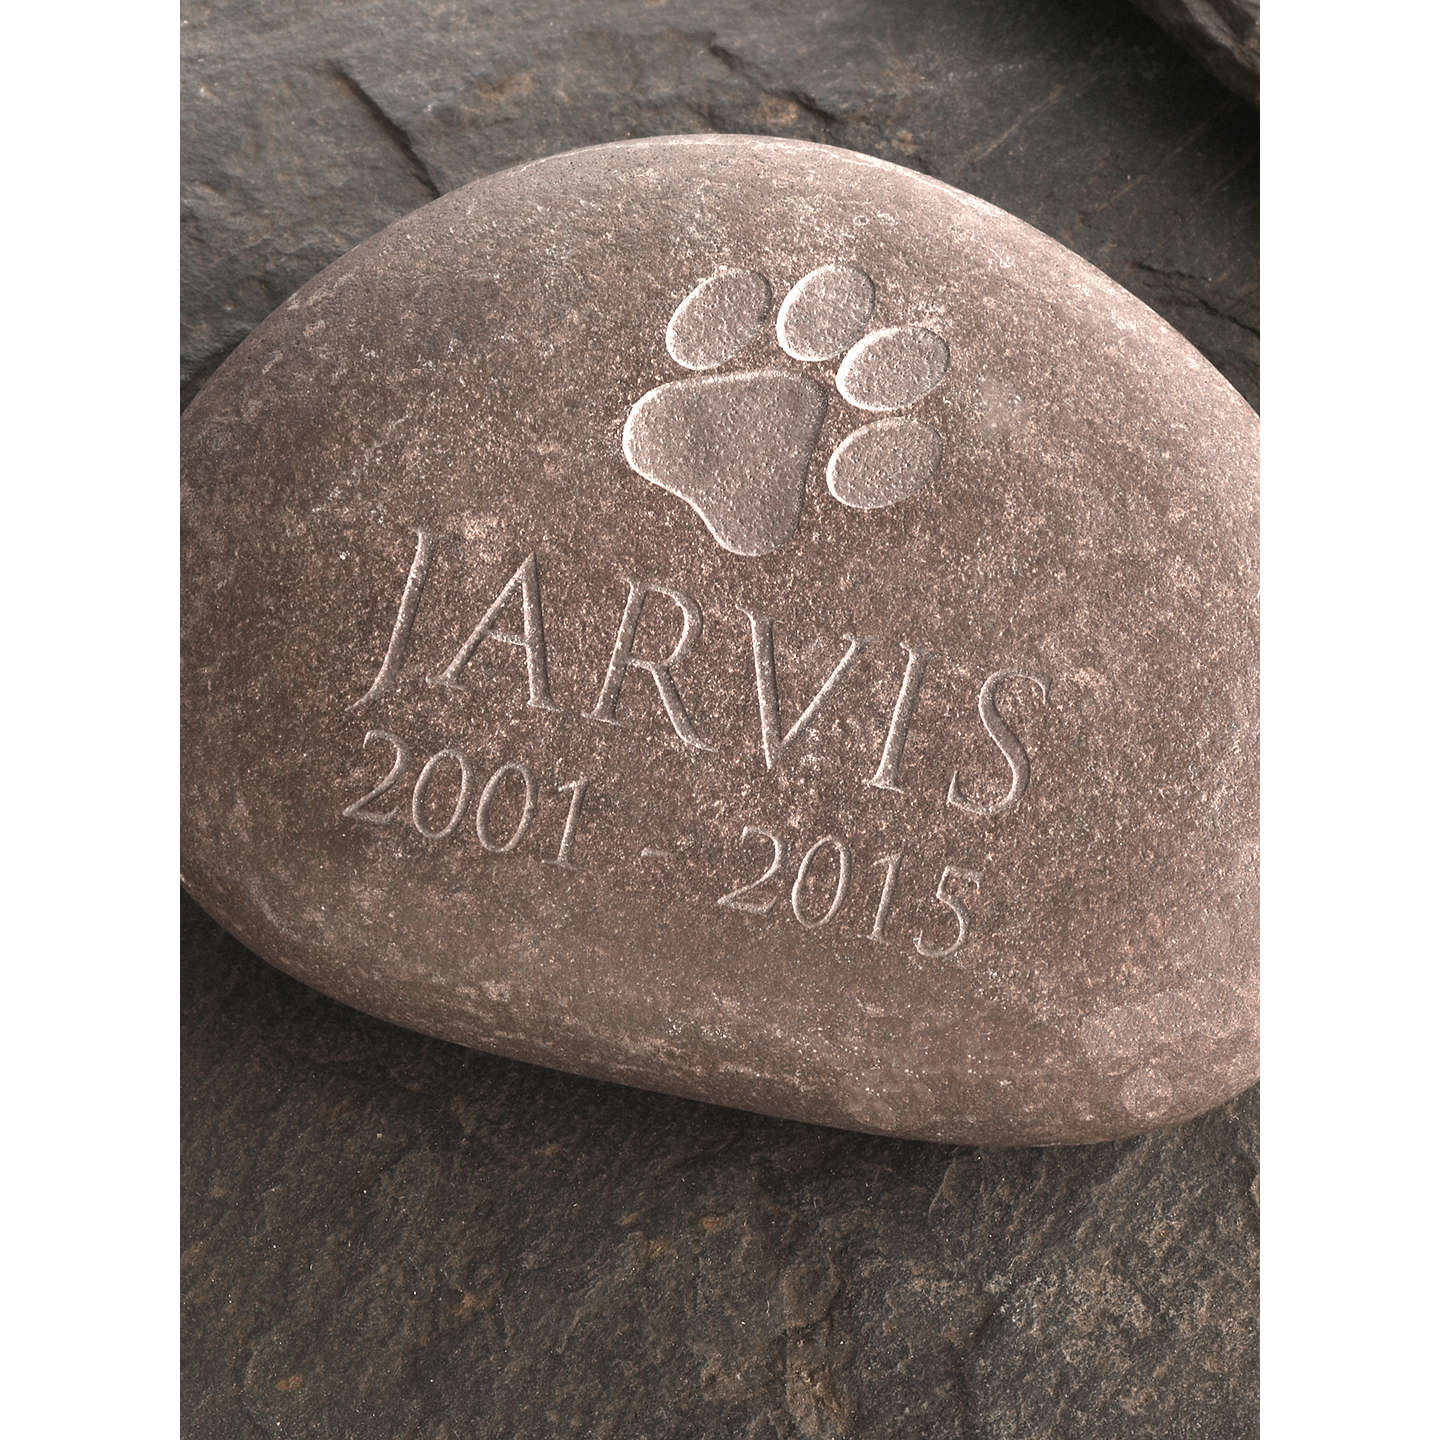 paddle cobble pacific pet garden stones stone memorial